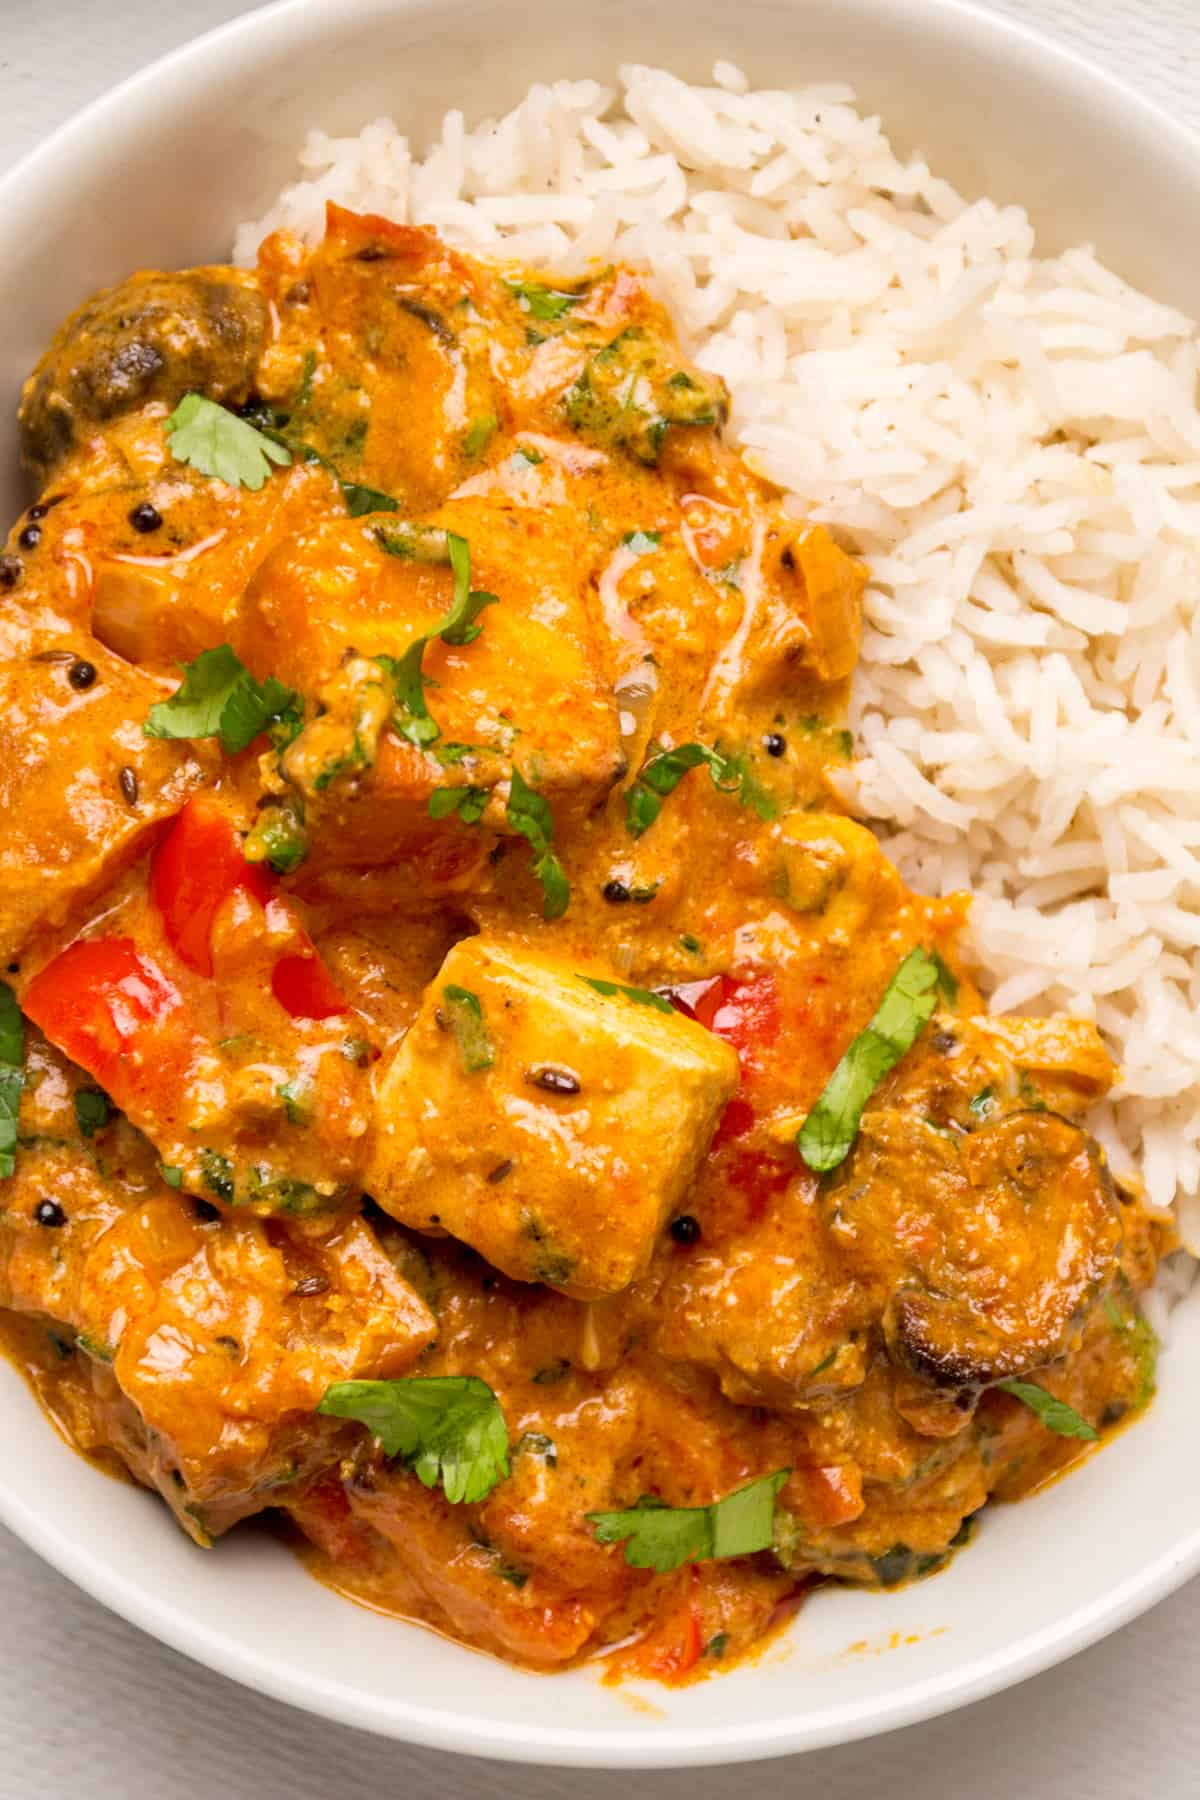 Thick curry sauce, with cubes of tofu, red pepper and mushrooms and herbs on top of some white rice.